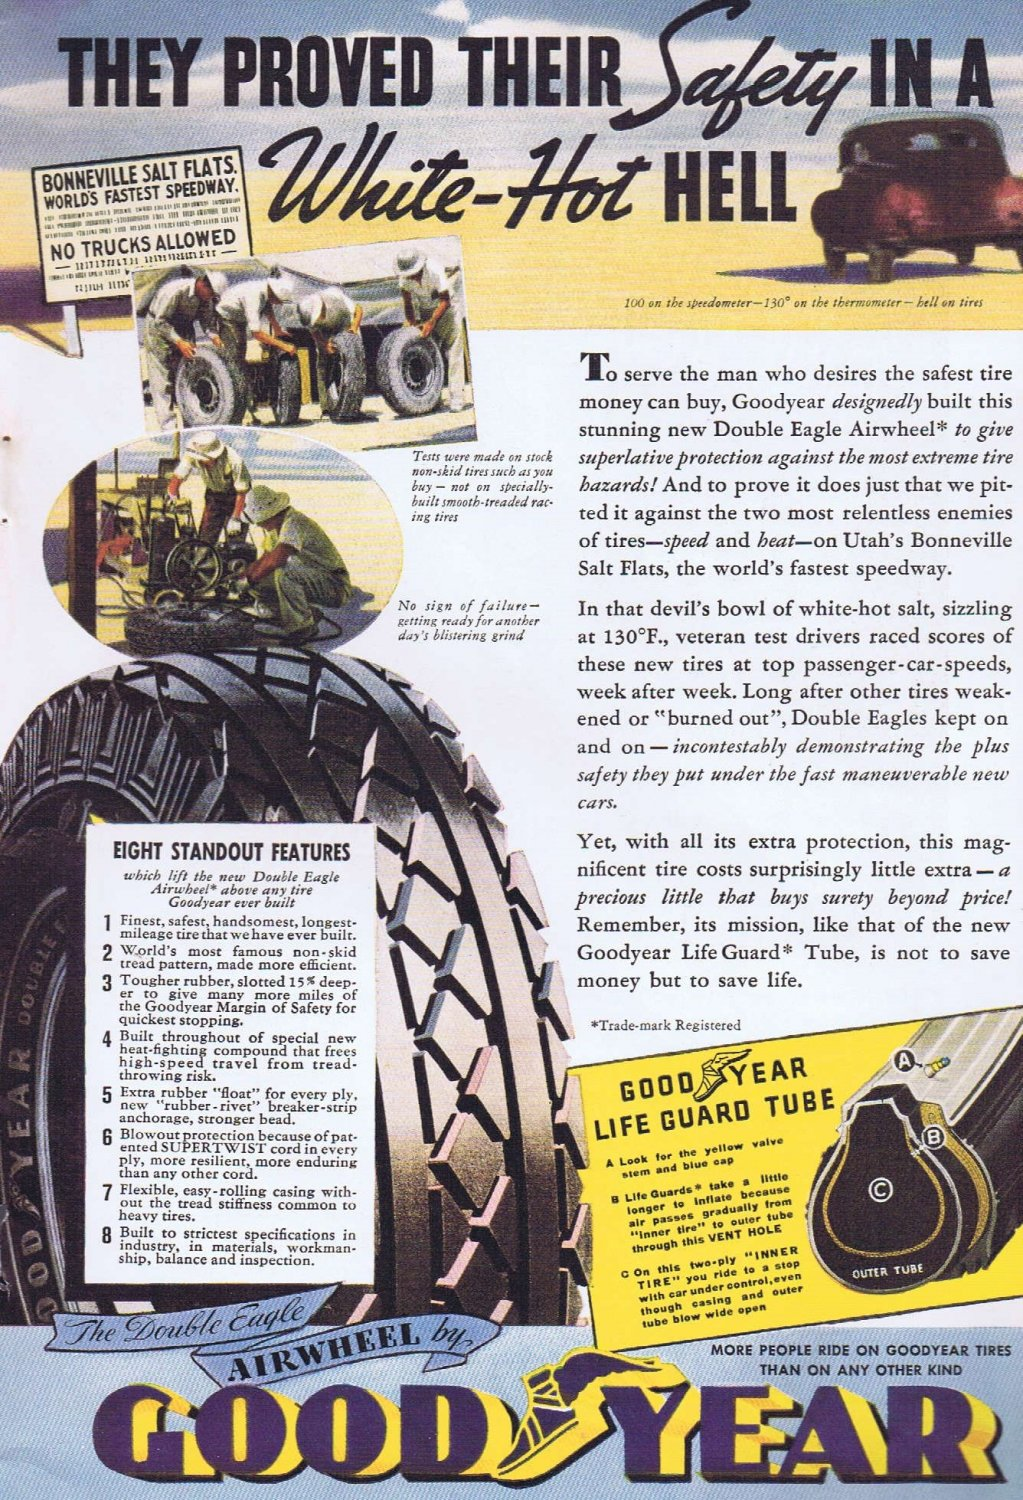 Good Year Double Eagle Airwheel Tires 1936 Original Vintage Ad with Safety in a White-Hot Hell